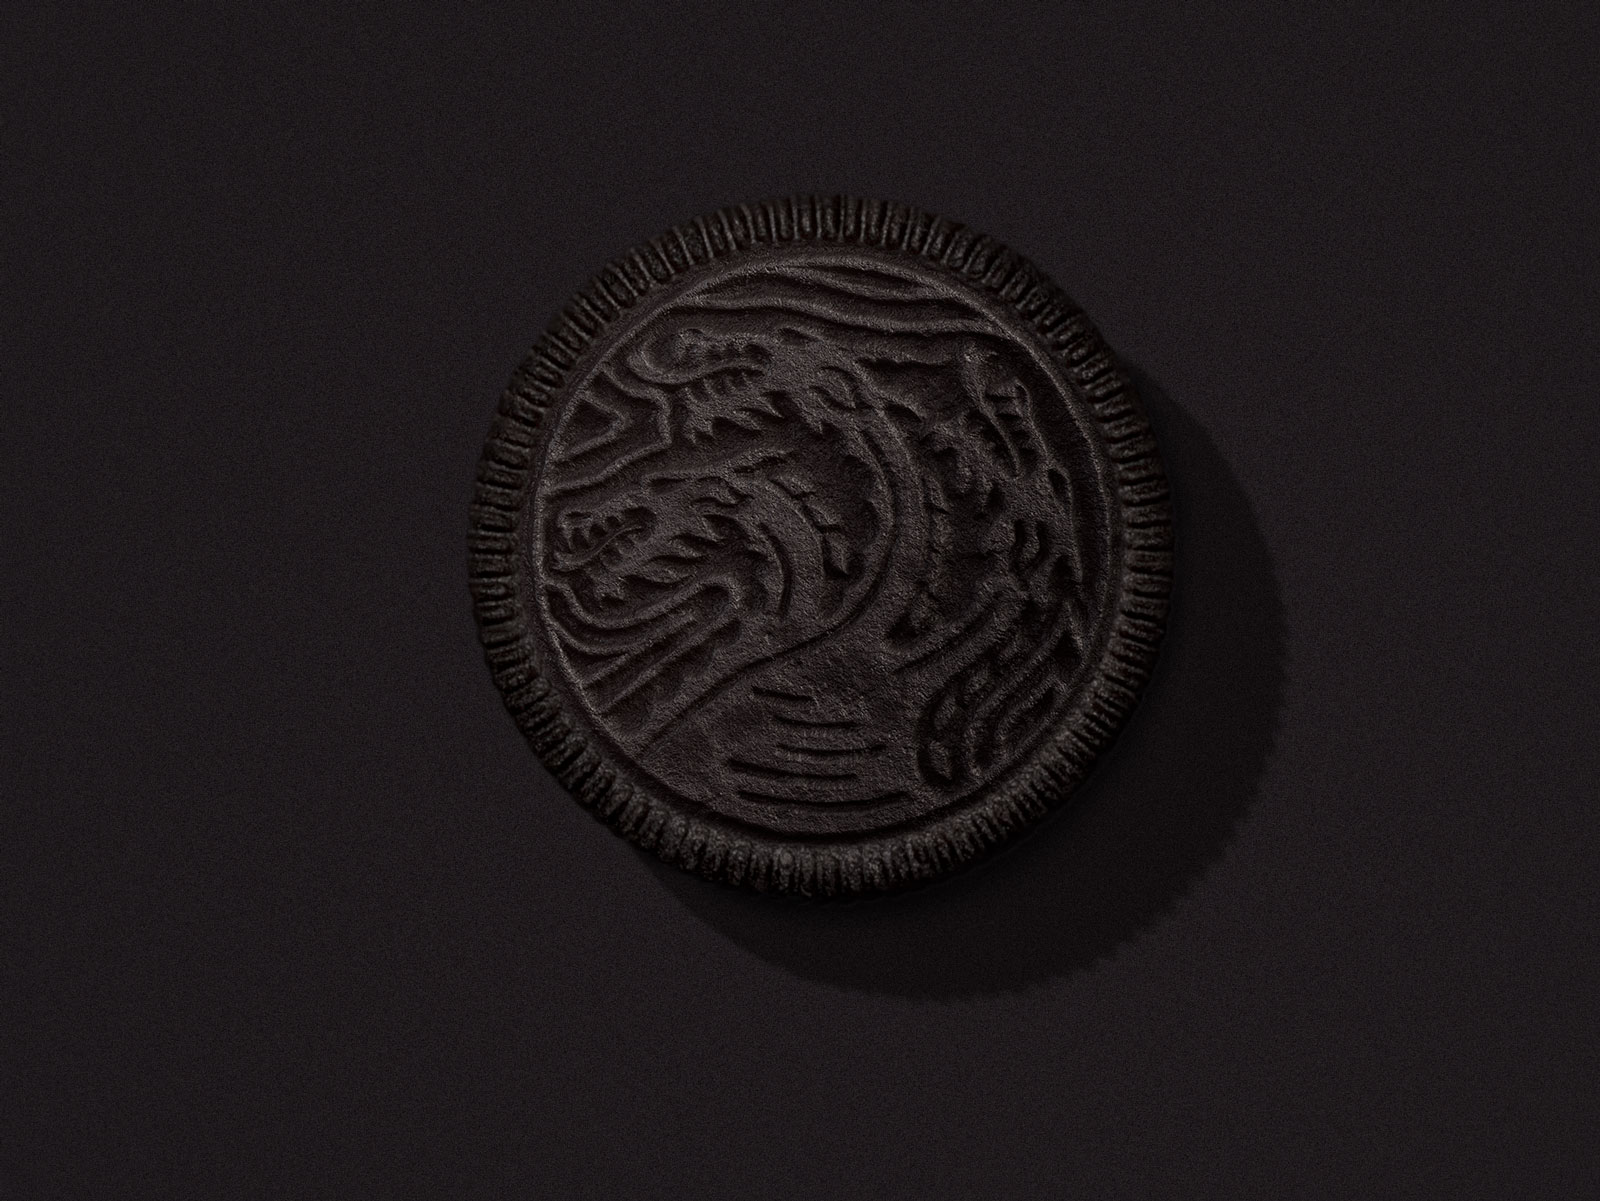 game-of-thrones-oreo-targ-FT-BLOG0319.jpg